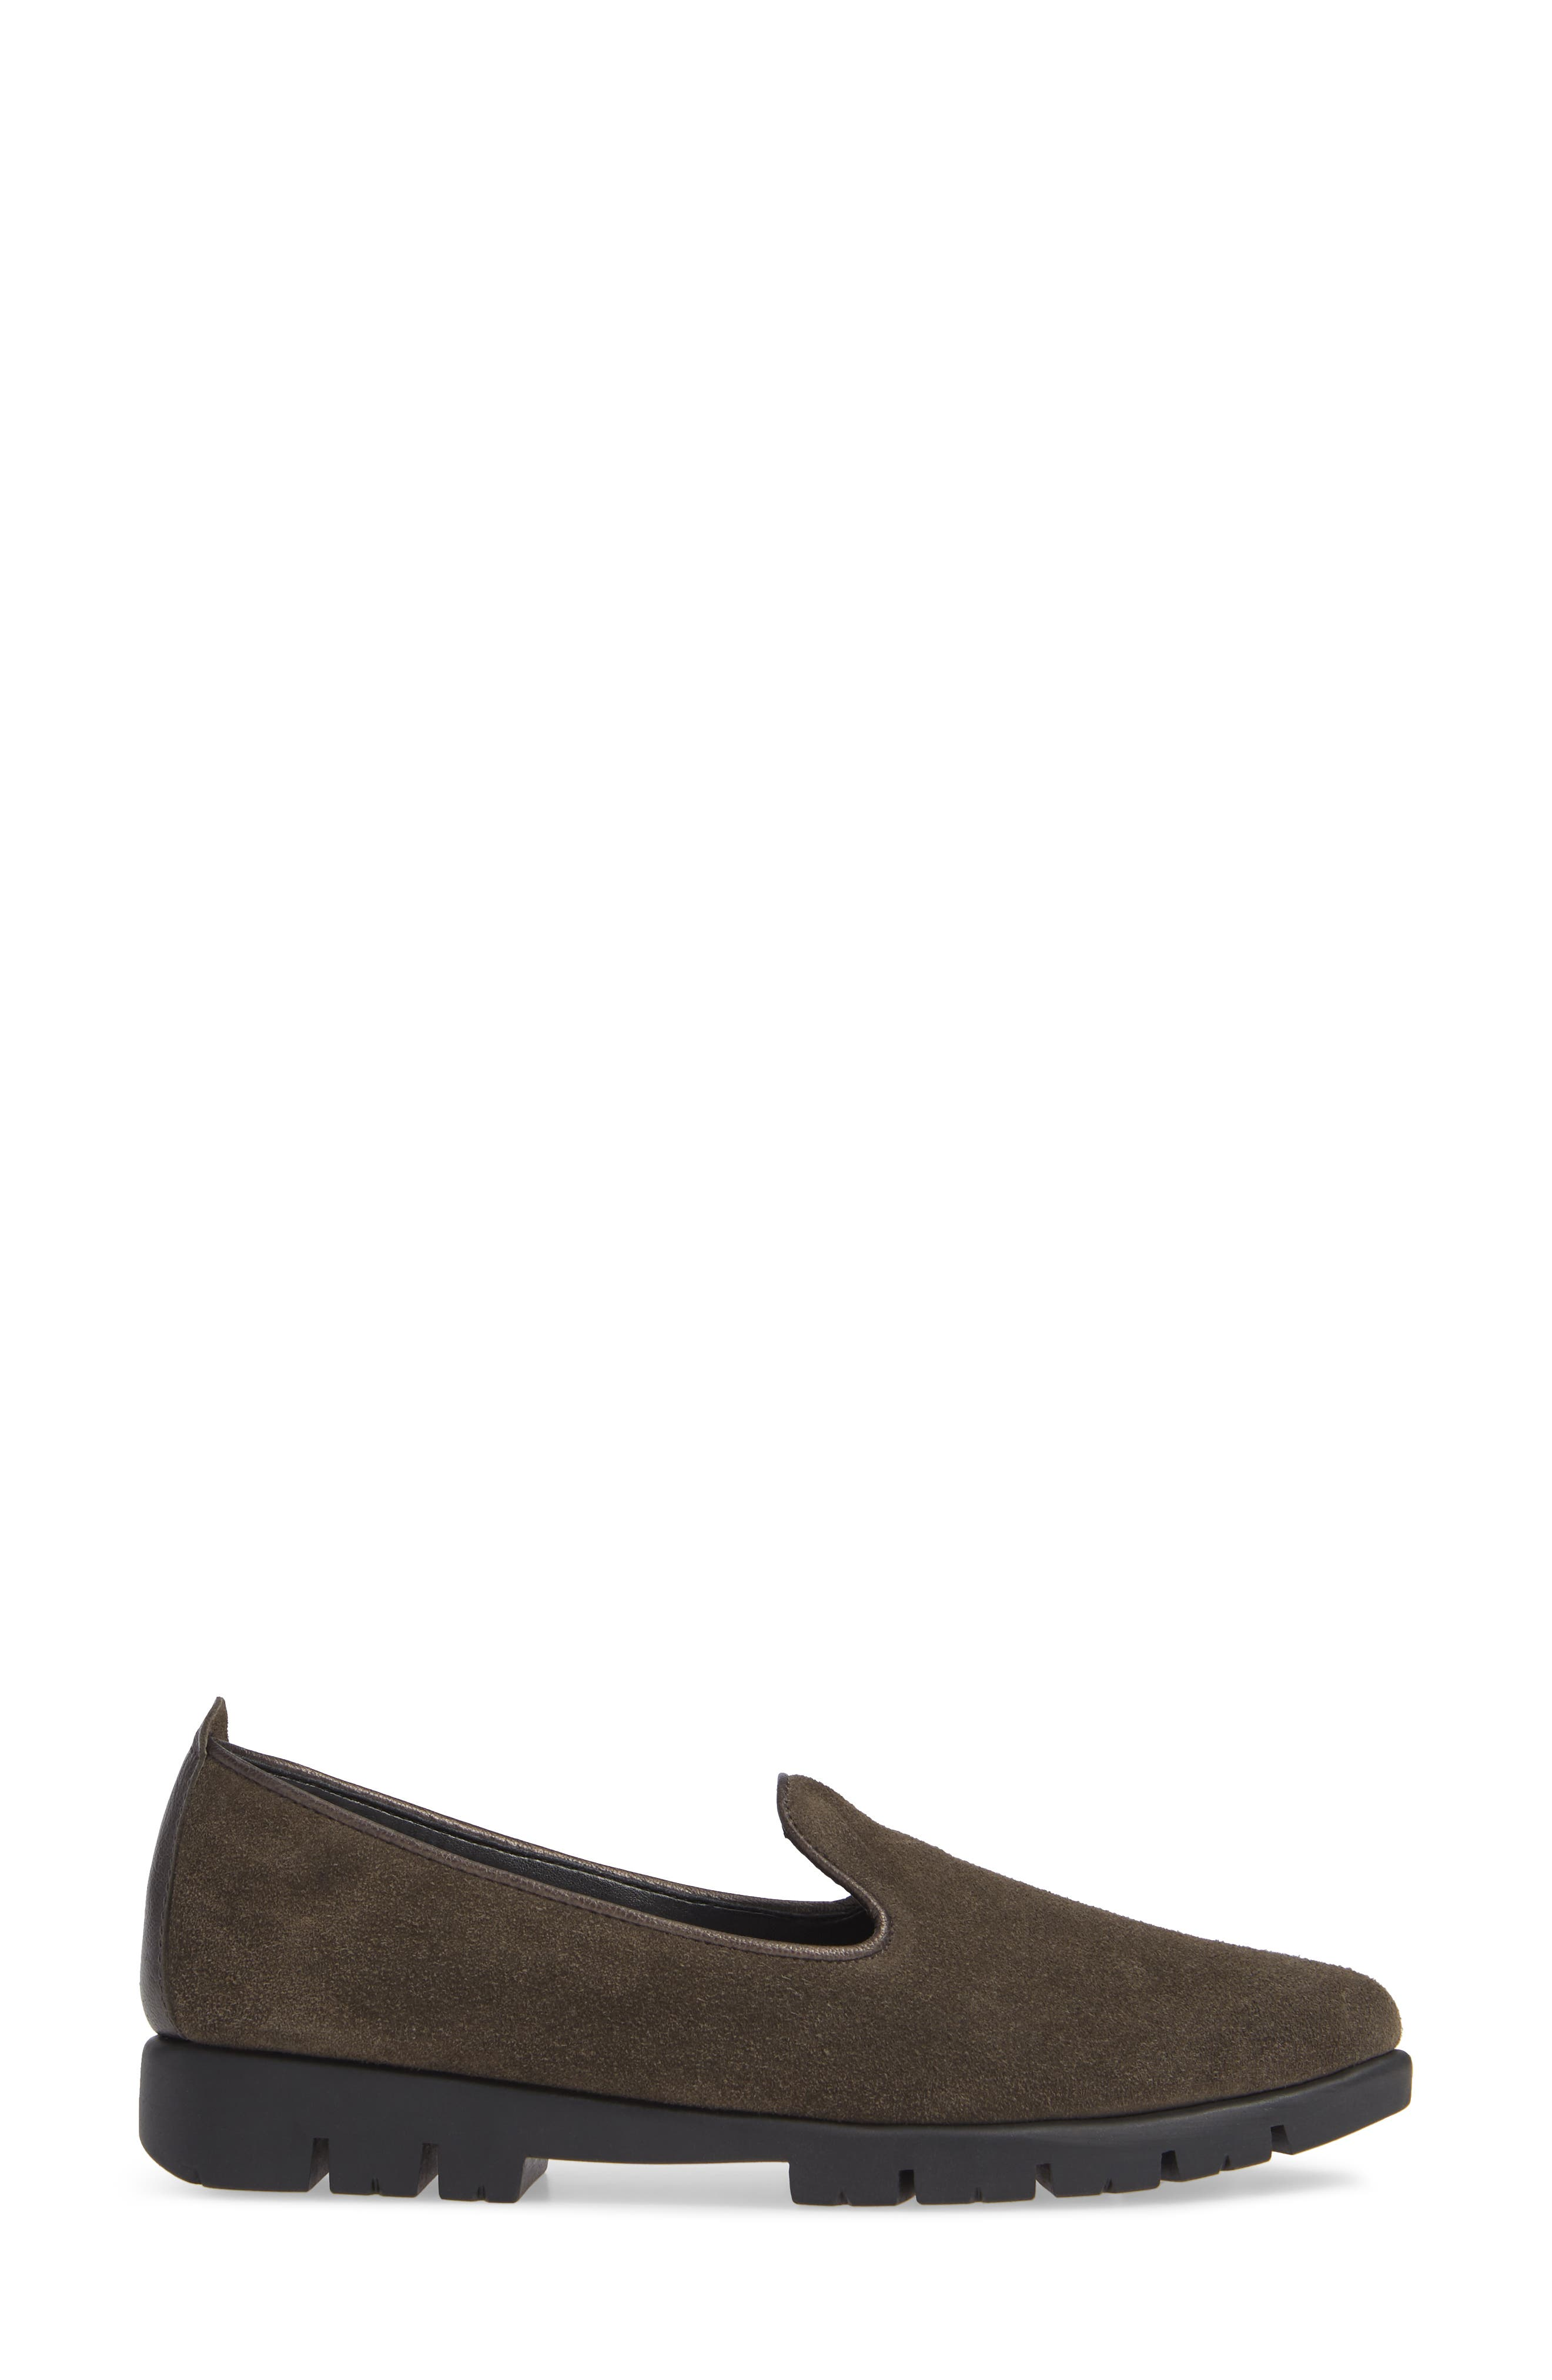 Smokin' Hot Plush Loafer,                             Alternate thumbnail 3, color,                             BROWN SUEDE